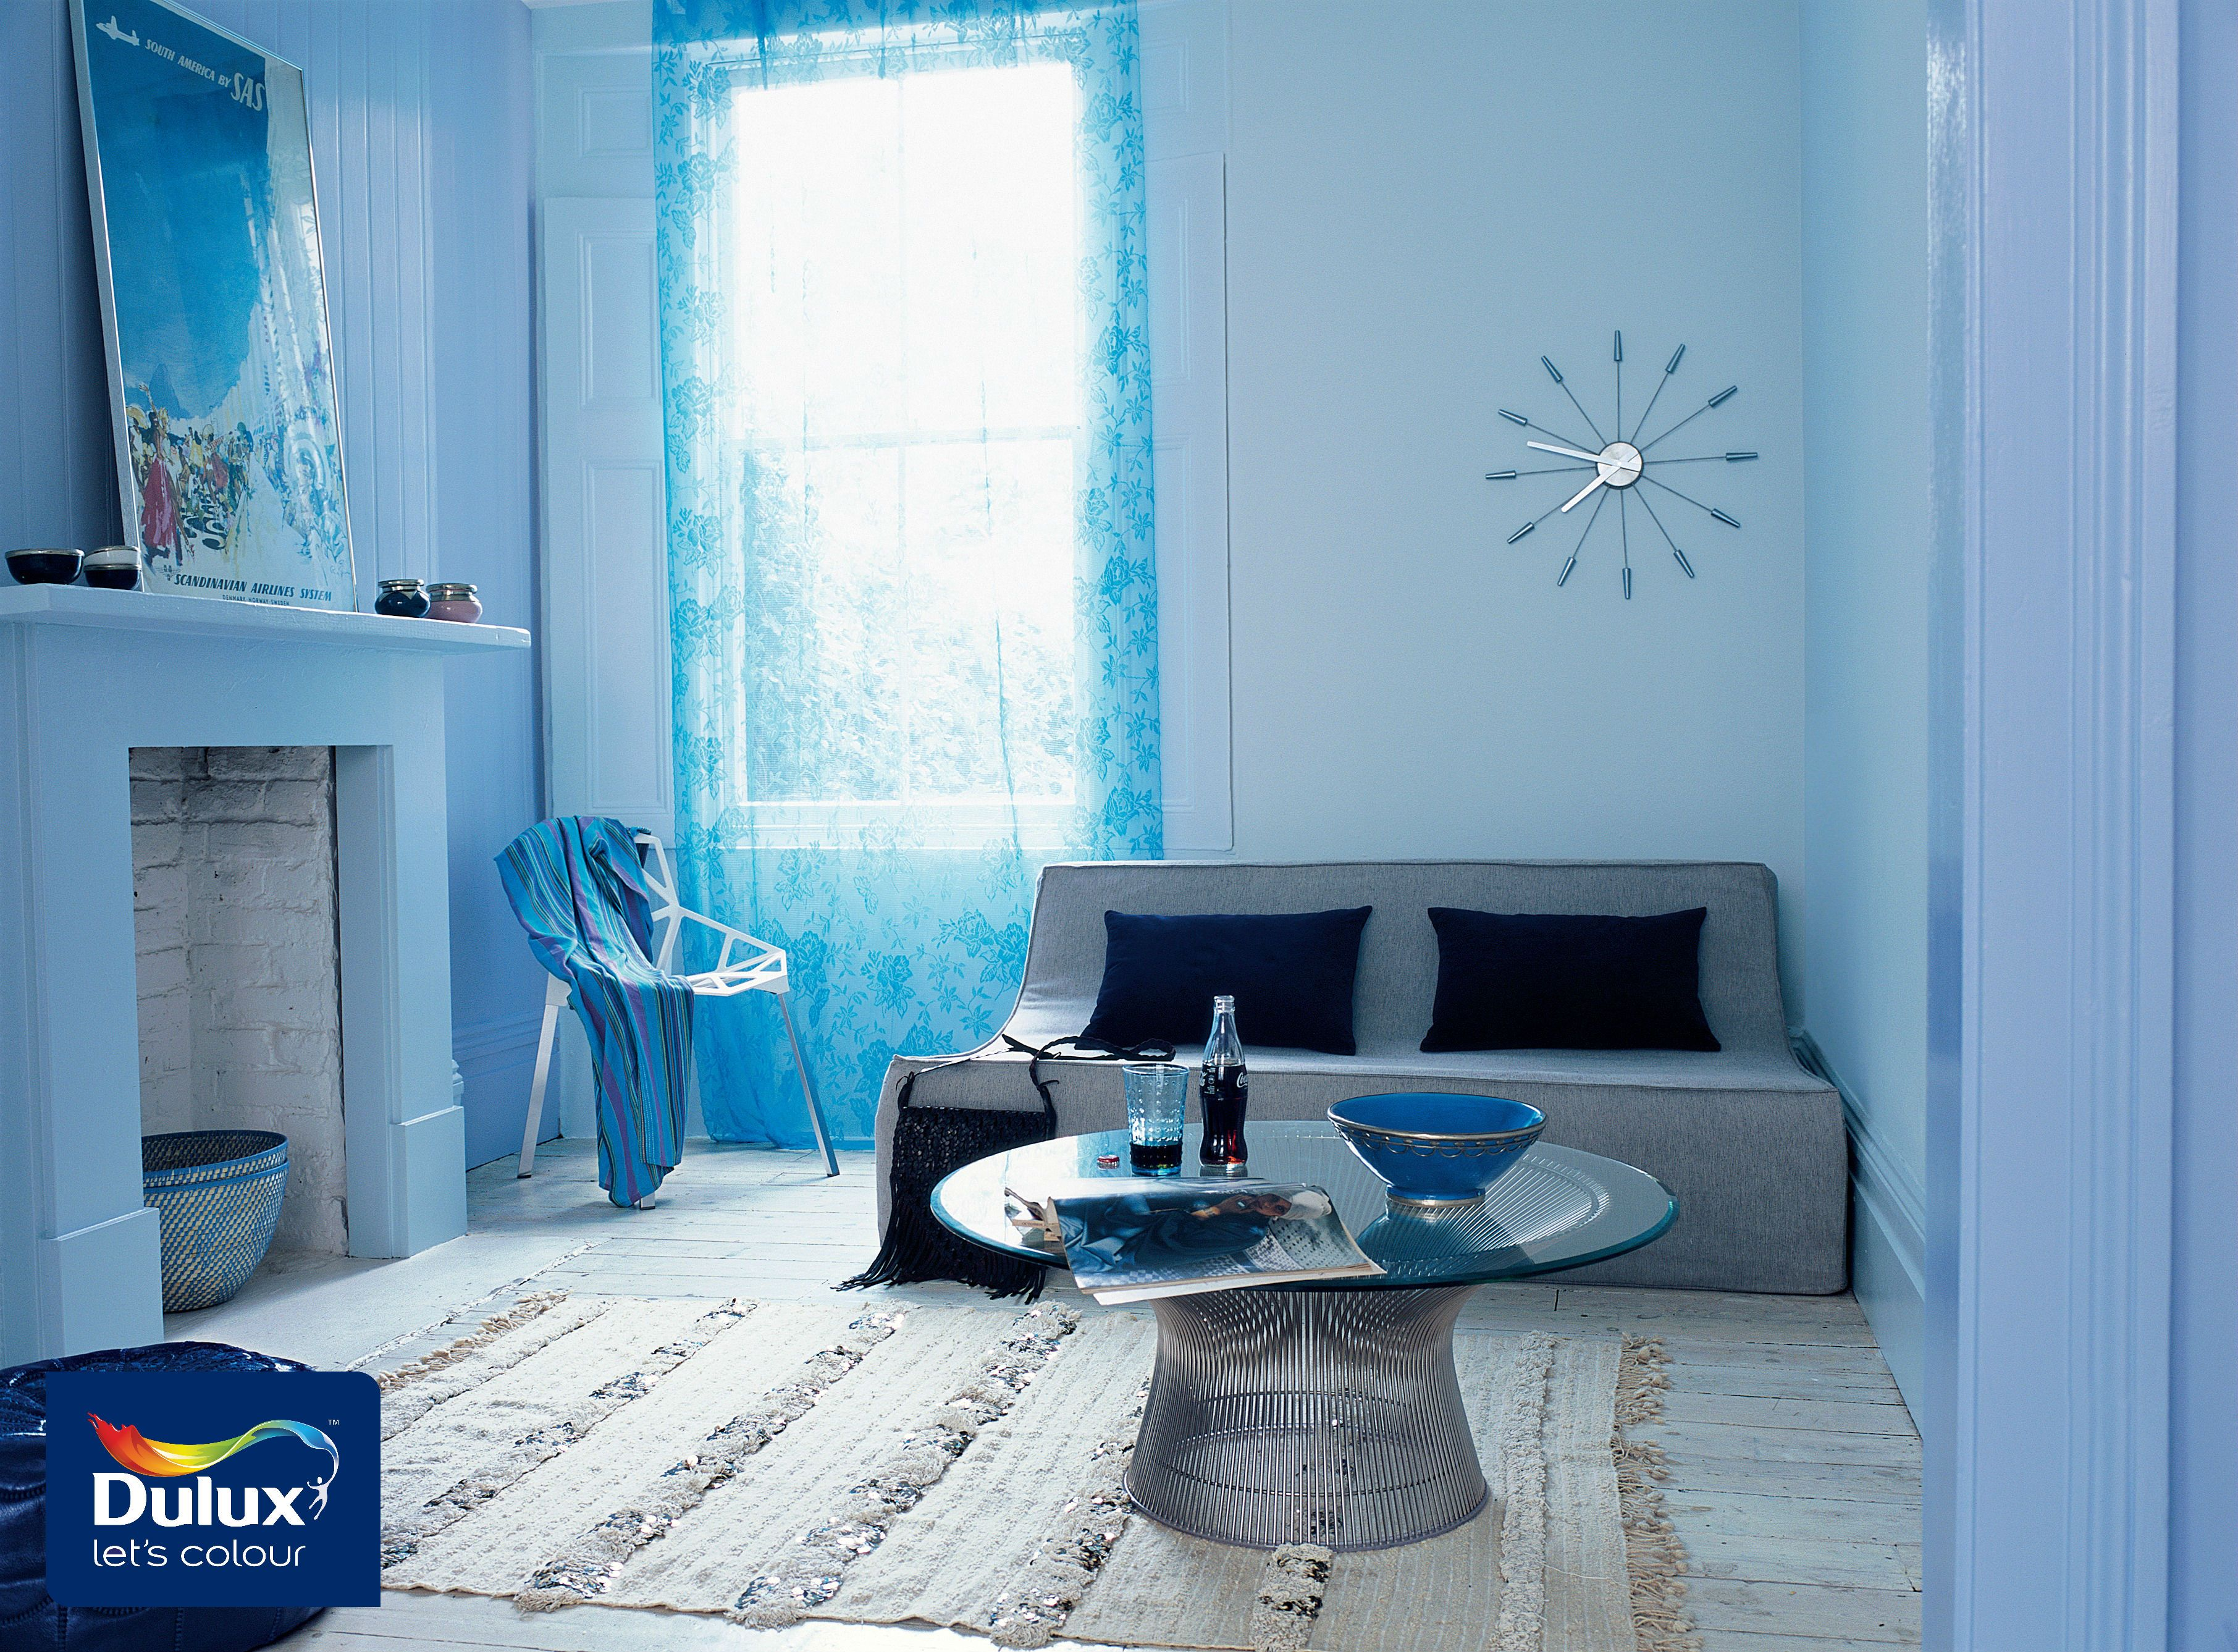 Here S A Living Room That Will Lighten Up Your Day Use Dulux All